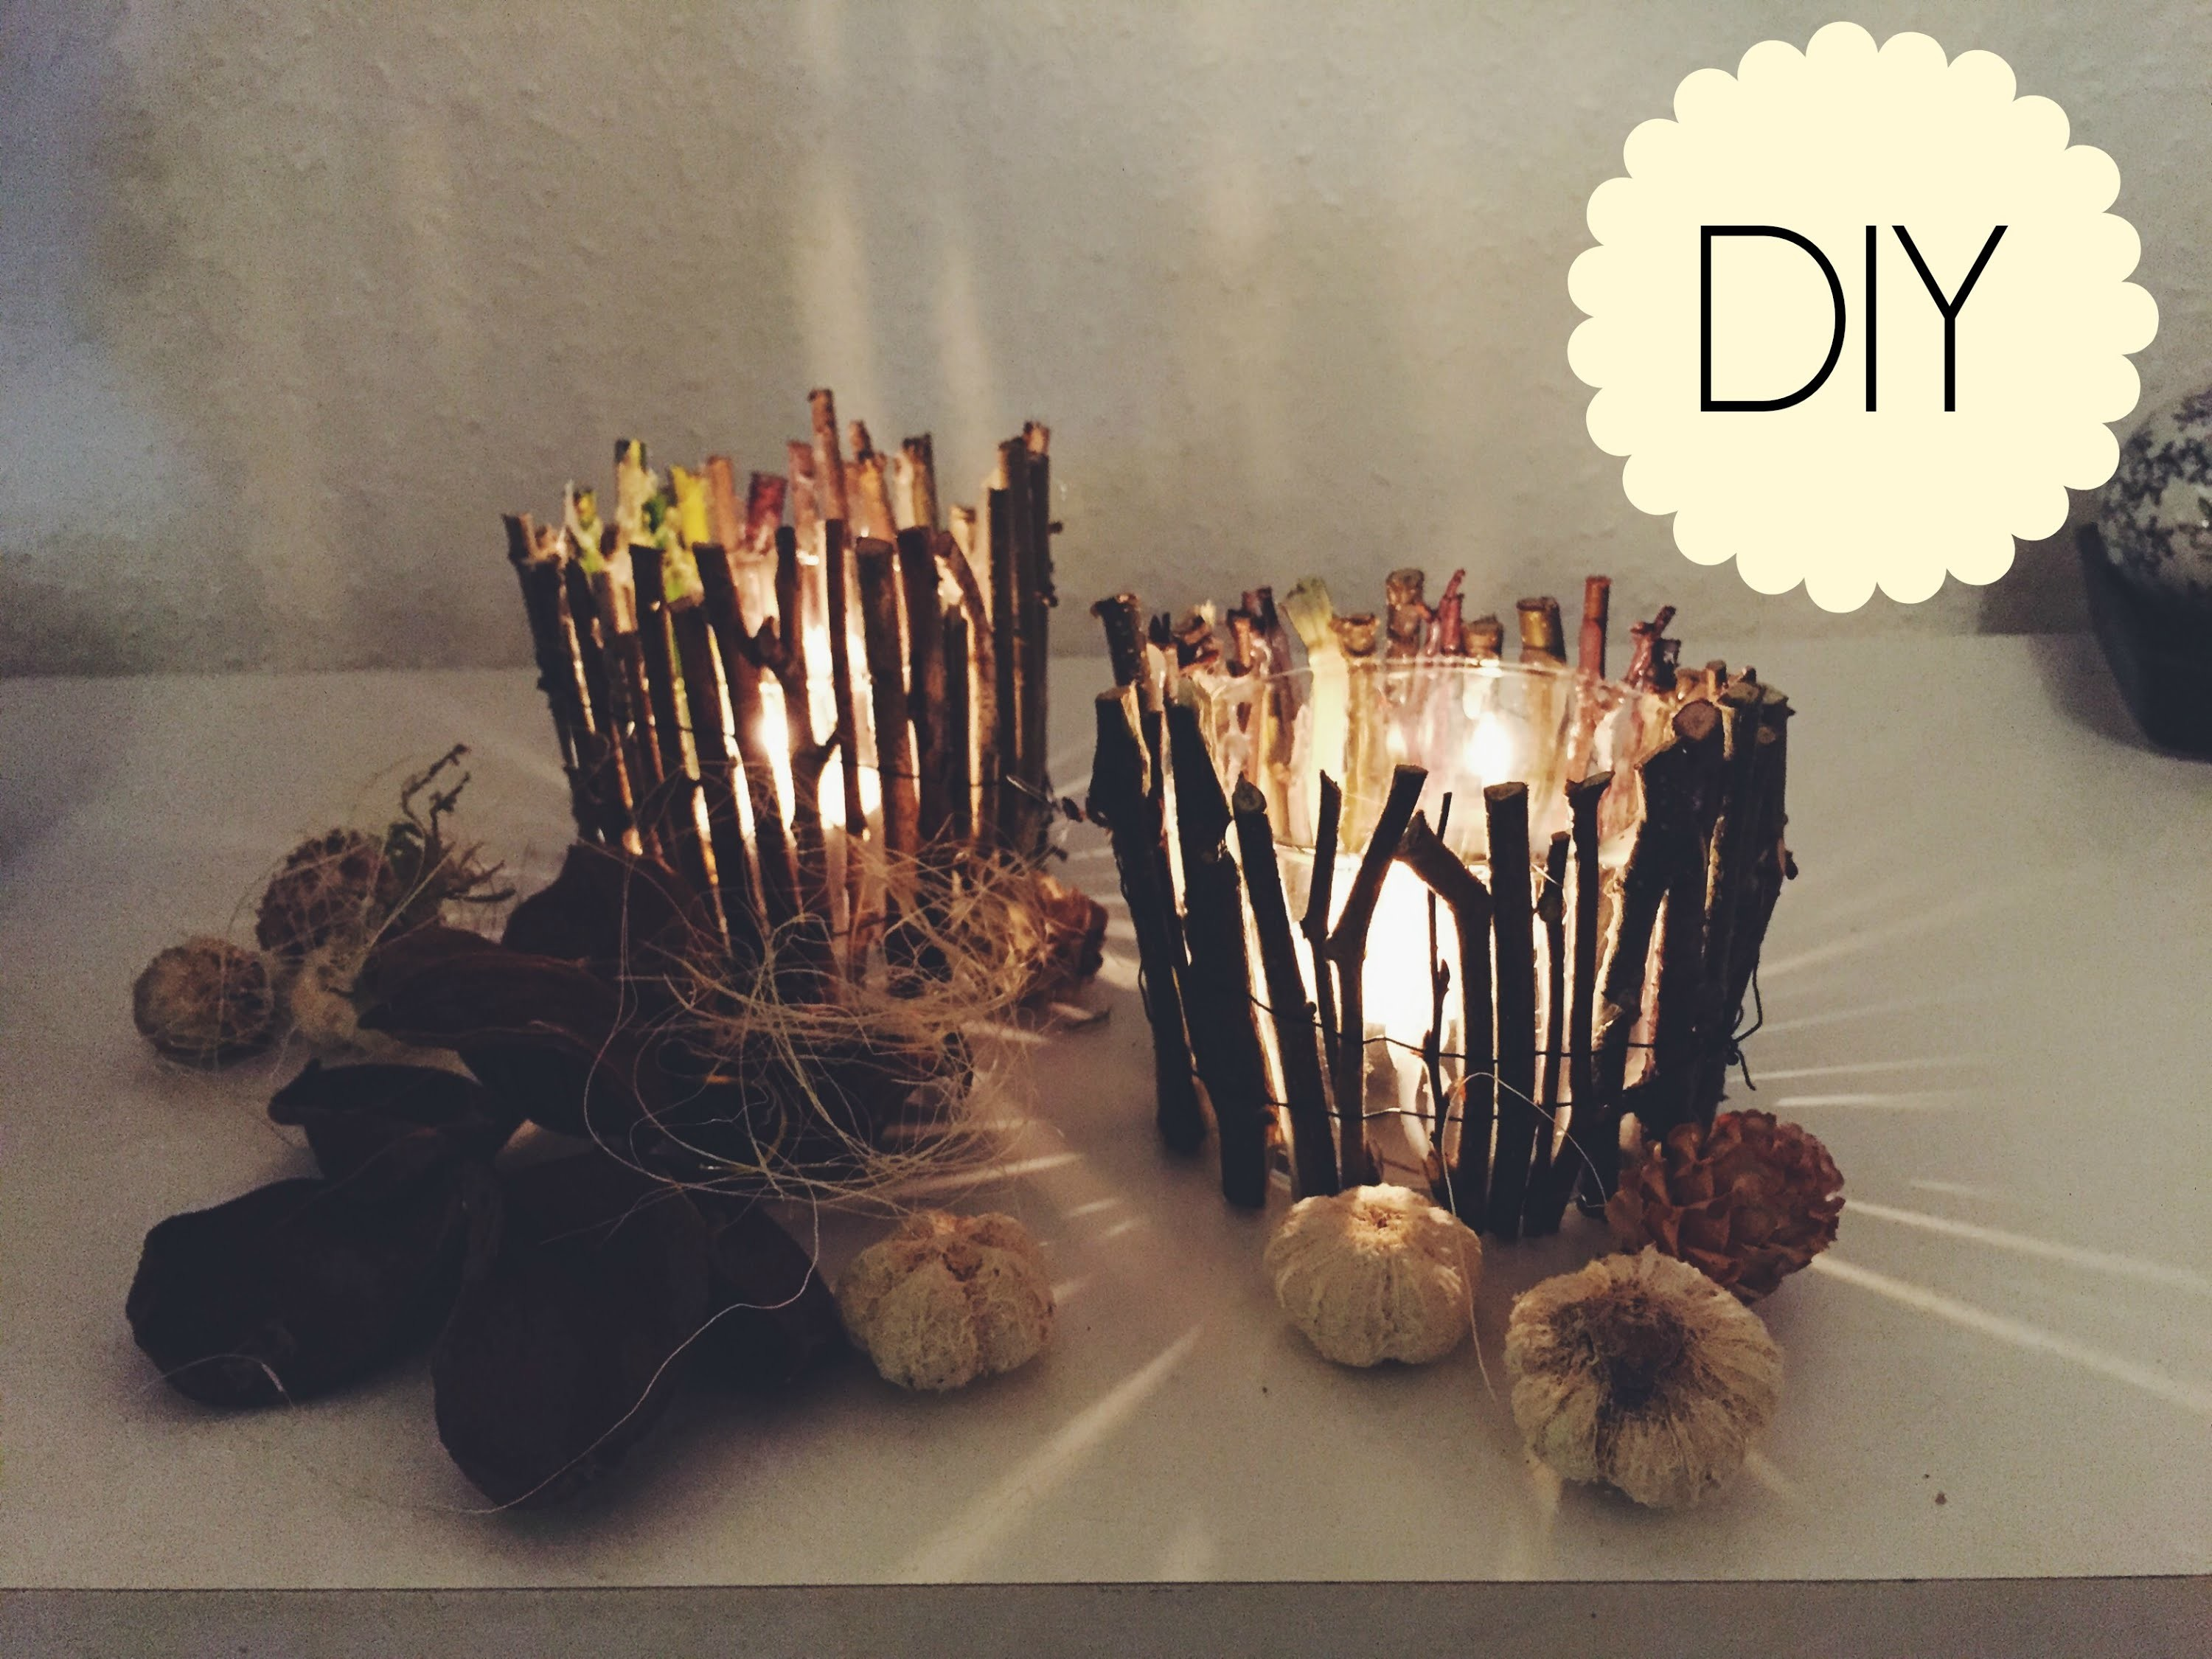 DIY: WOOD CANDLE HOLDERS